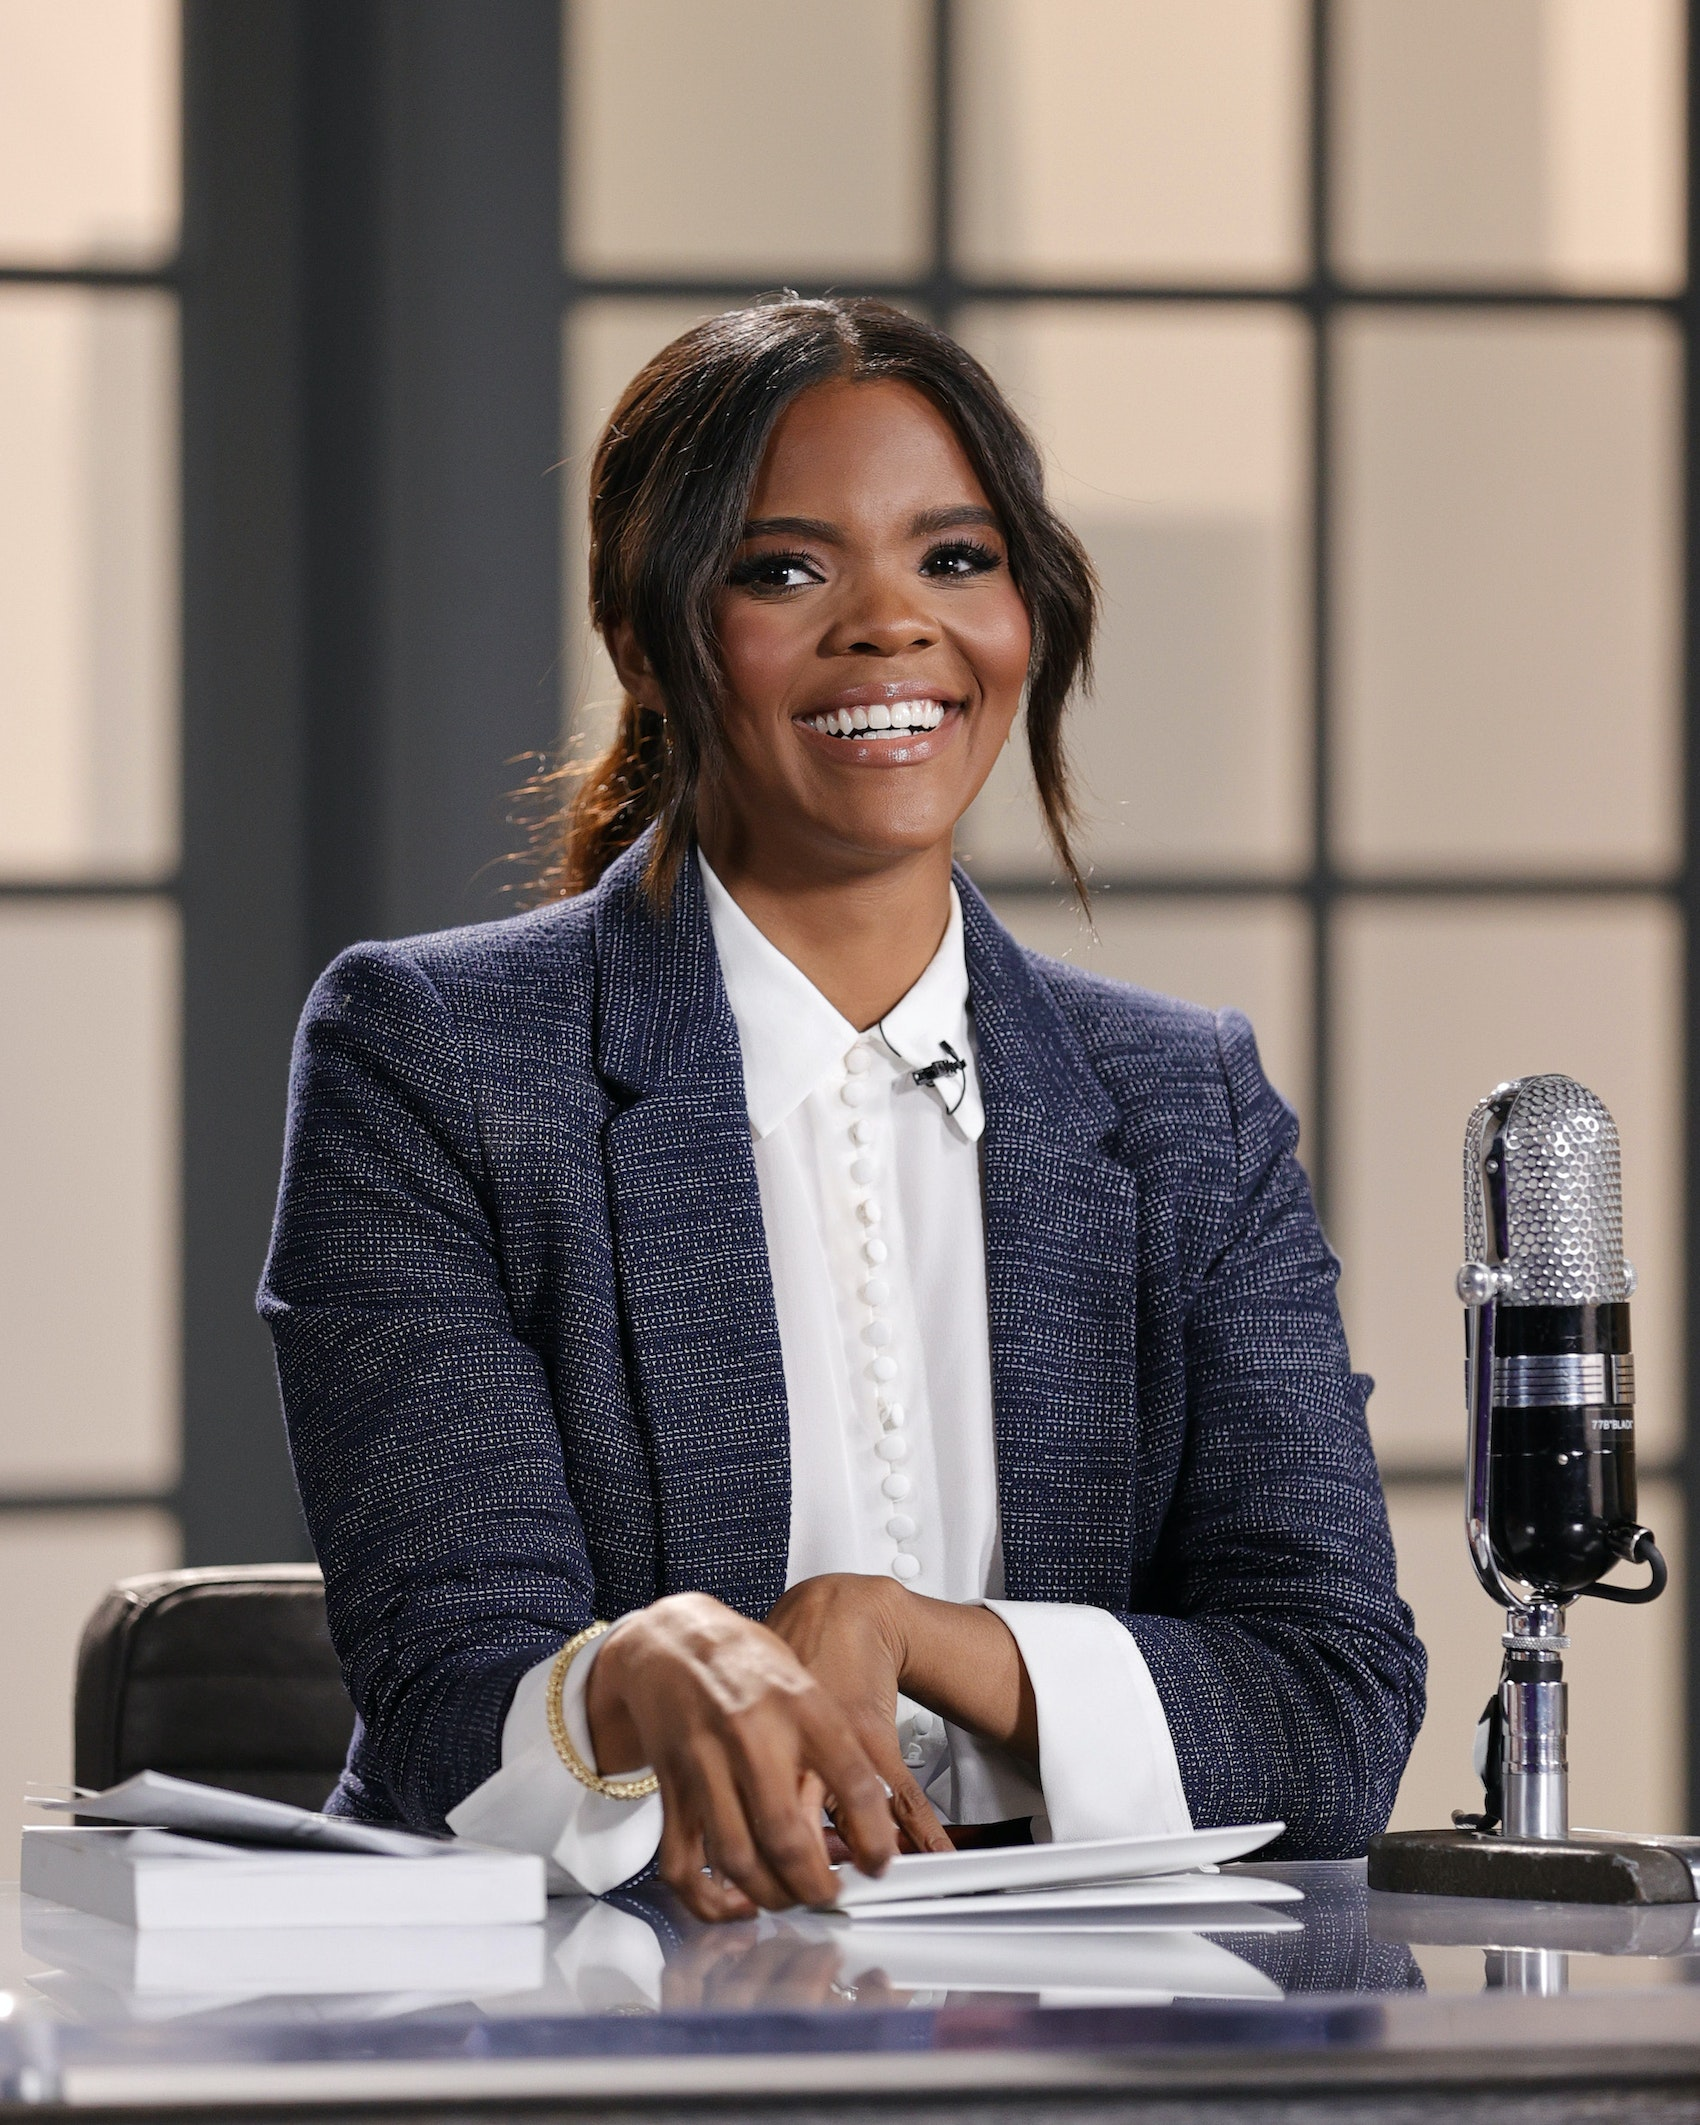 """Host Candace Owens is seen on set of """"Candace"""" on March 31, 2021 in Nashville, Tennessee. The show will air on Friday, April 2, 2021. (Photo by Jason Kempin/Getty Images)"""